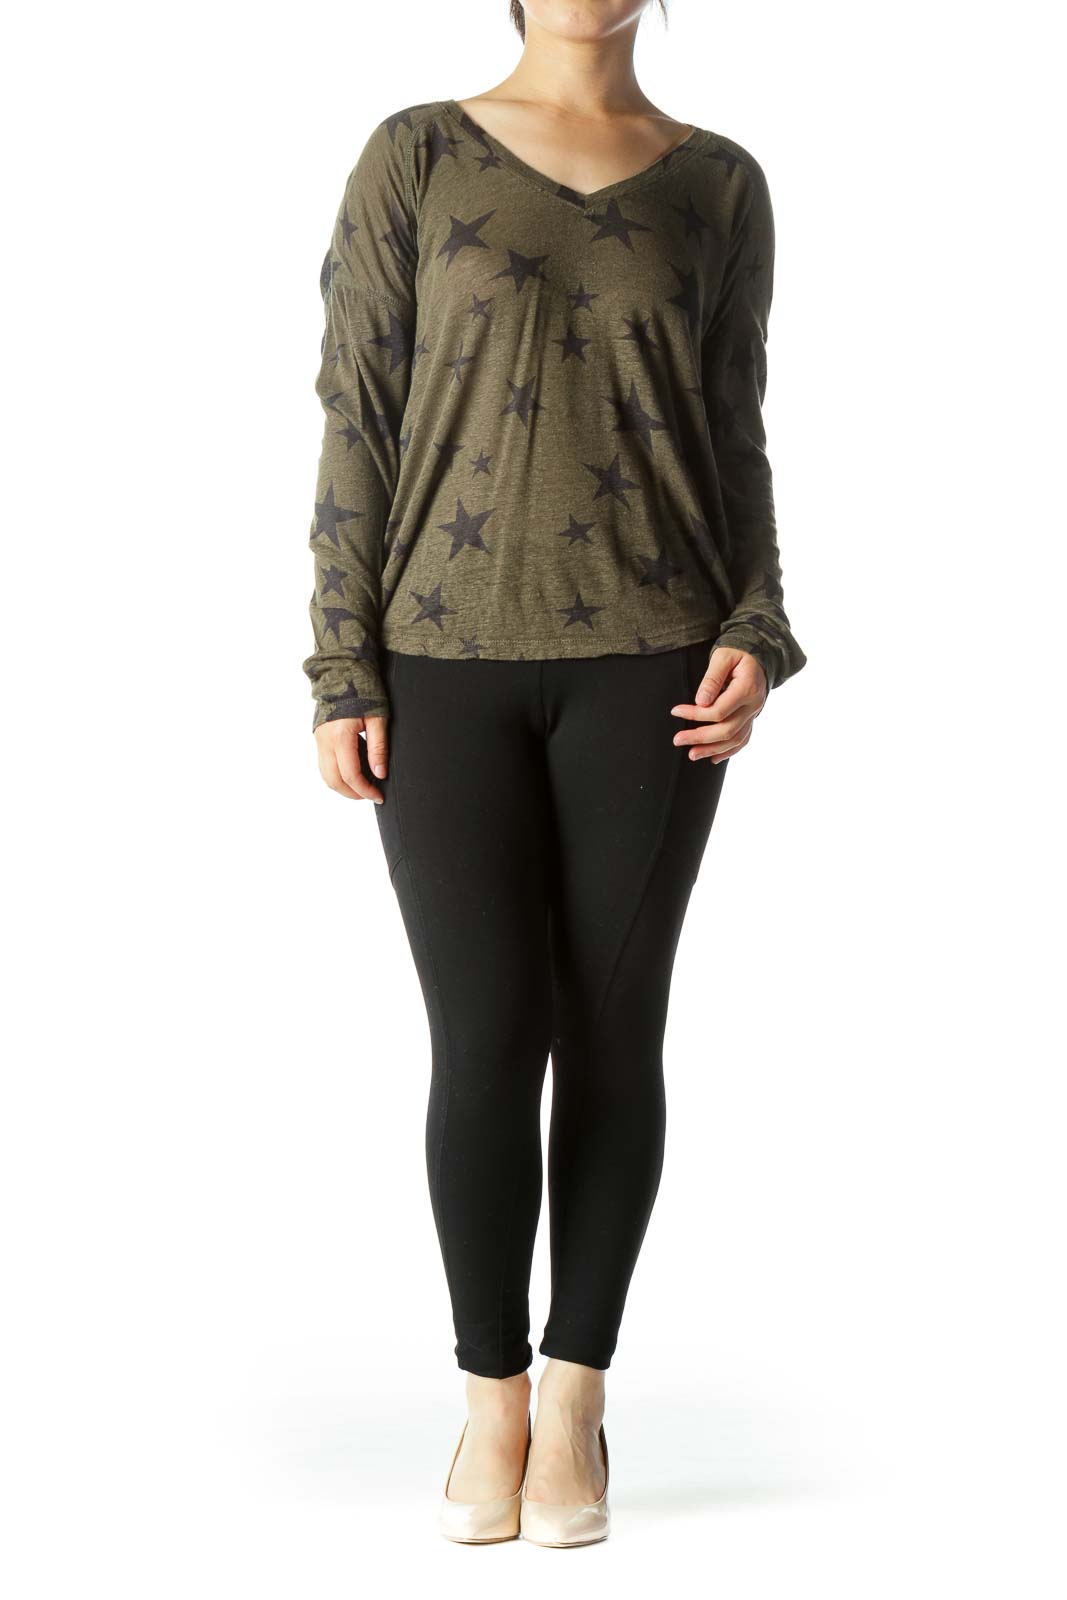 Olive Green Black V-Neck Star-Print Long Sleeve Top